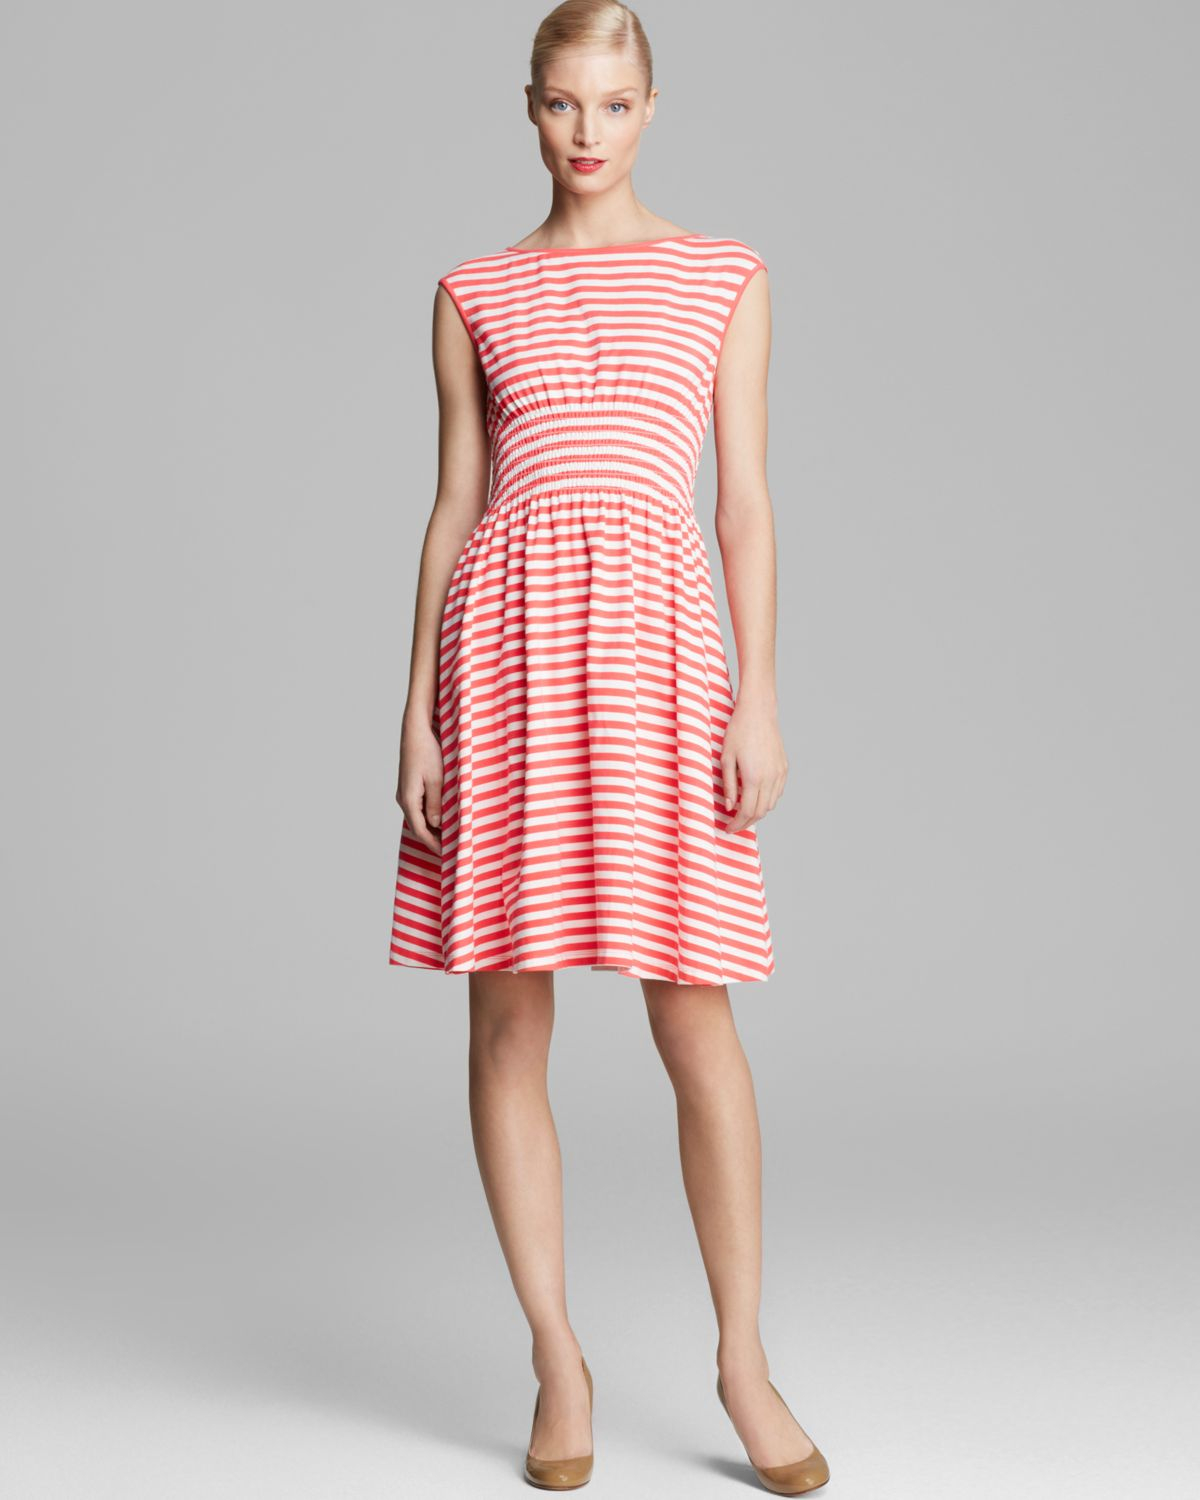 Kate Spade New York Leora Dress In Red Lyst